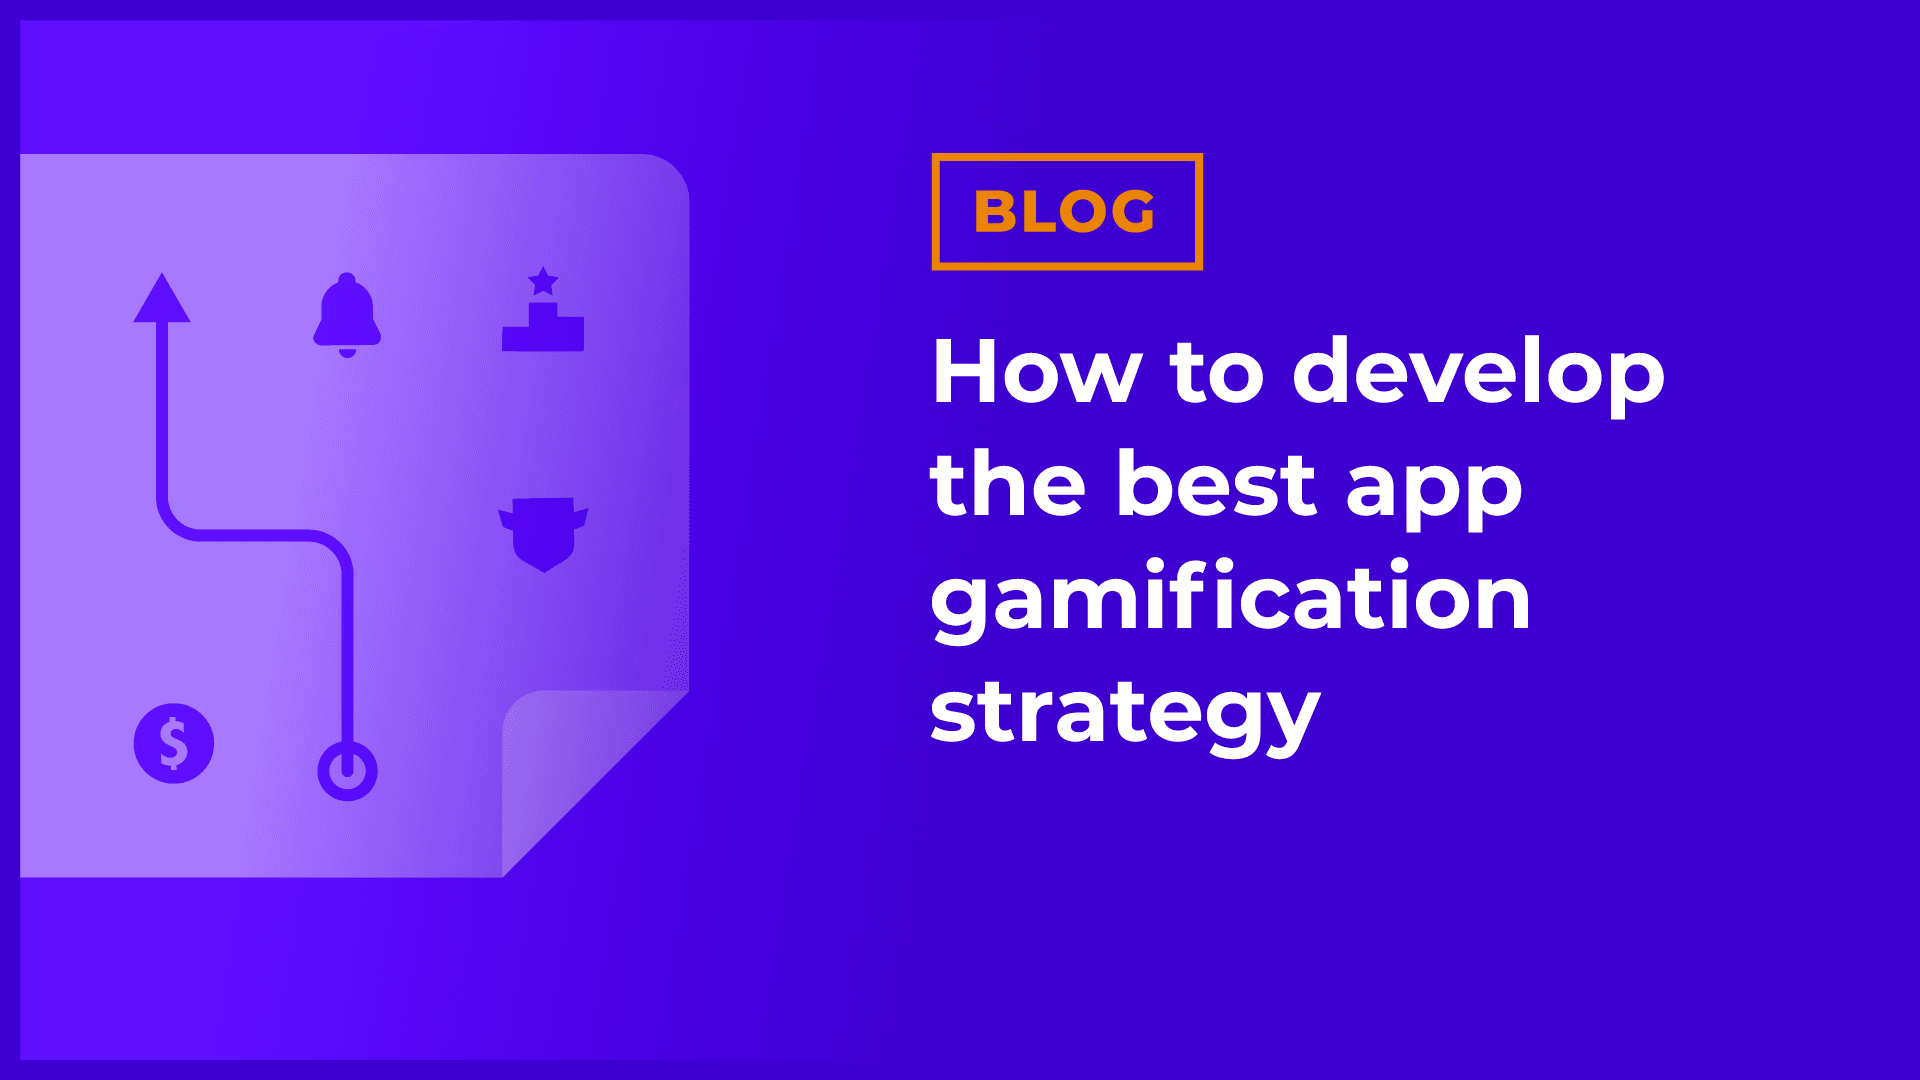 How to develop the best app gamification strategy - everything you need to know!